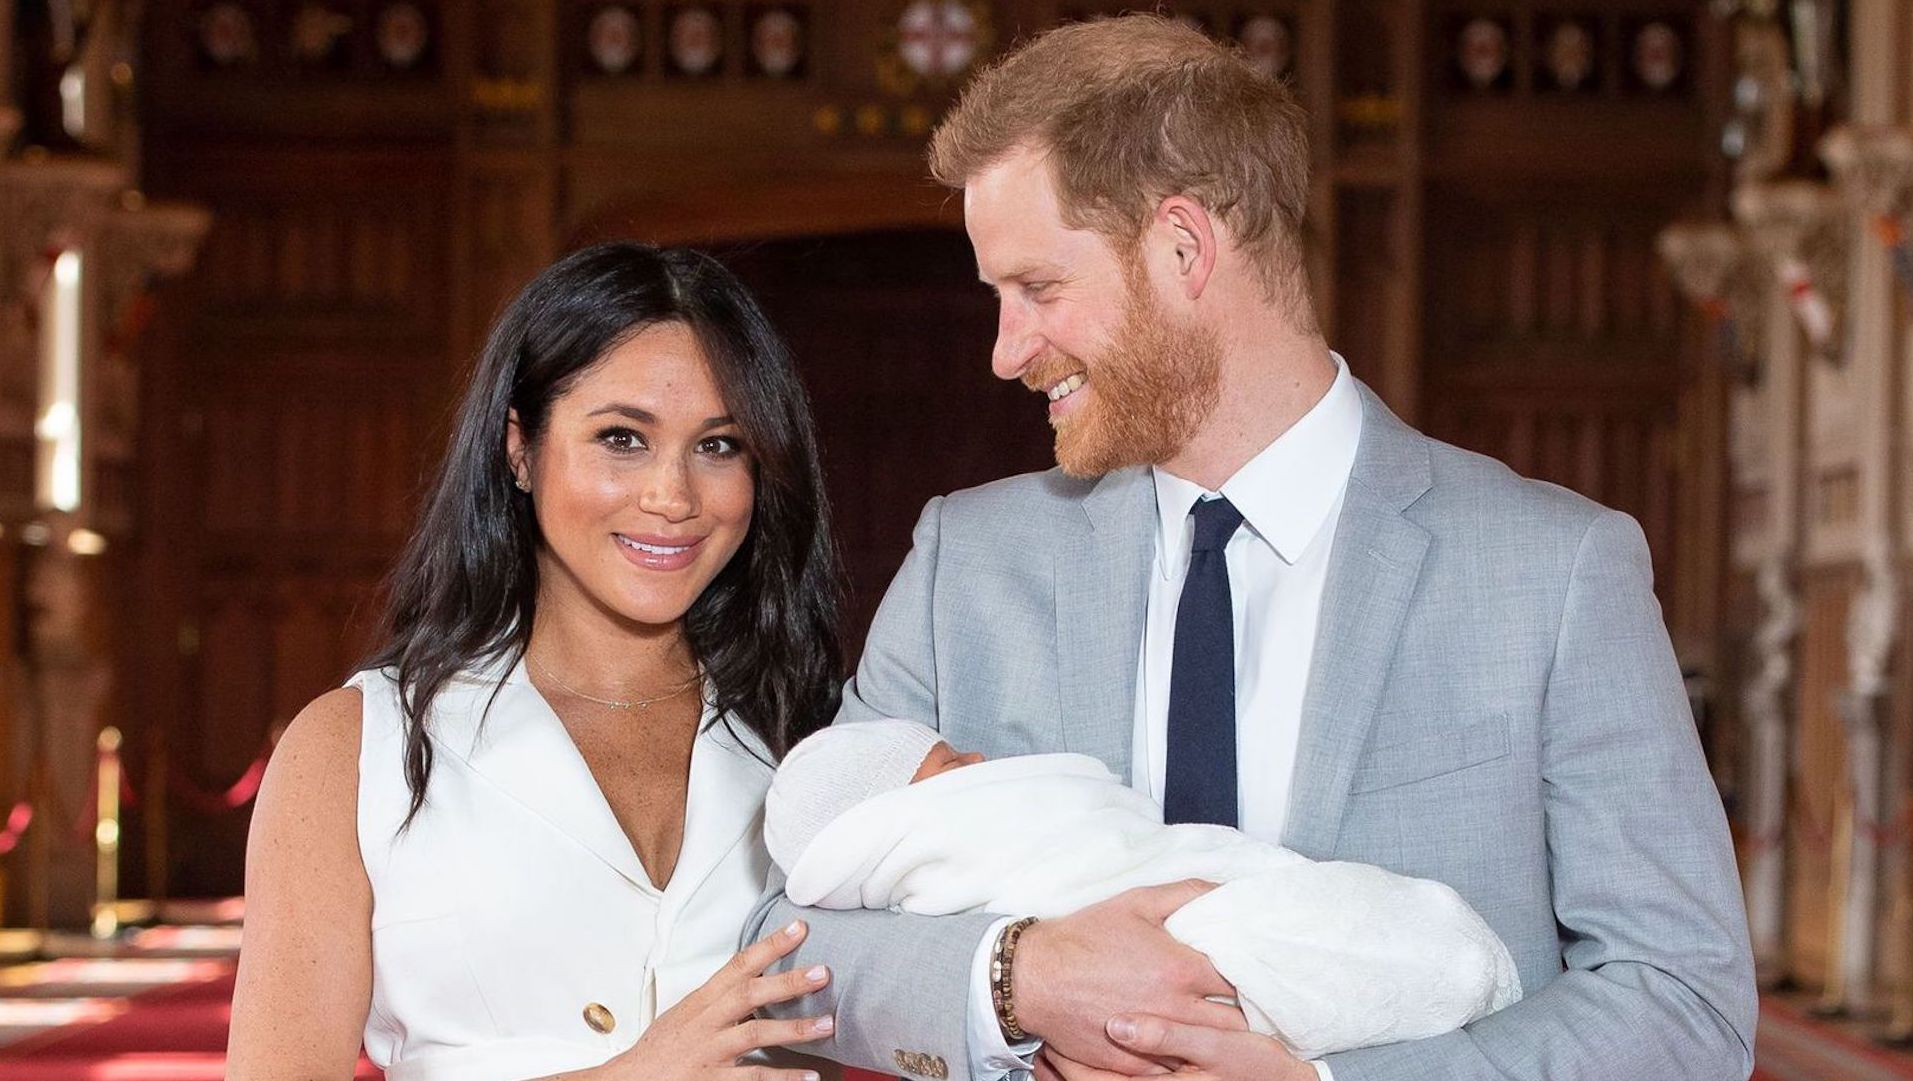 Editorial use only.Mandatory Credit: Photo by Domic Lipinski/PA/EPA-EFE/REX/Shutterstock (10231477g)Prince Harry (R) and Meghan Duchess of Sussex pose together with their newborn son Archie Harrison Mountbatten-Windsor in WindsorPrince Harry and Meghan Duchess of Sussex new baby photocall, Windsor Castle, UK - 08 May 2019